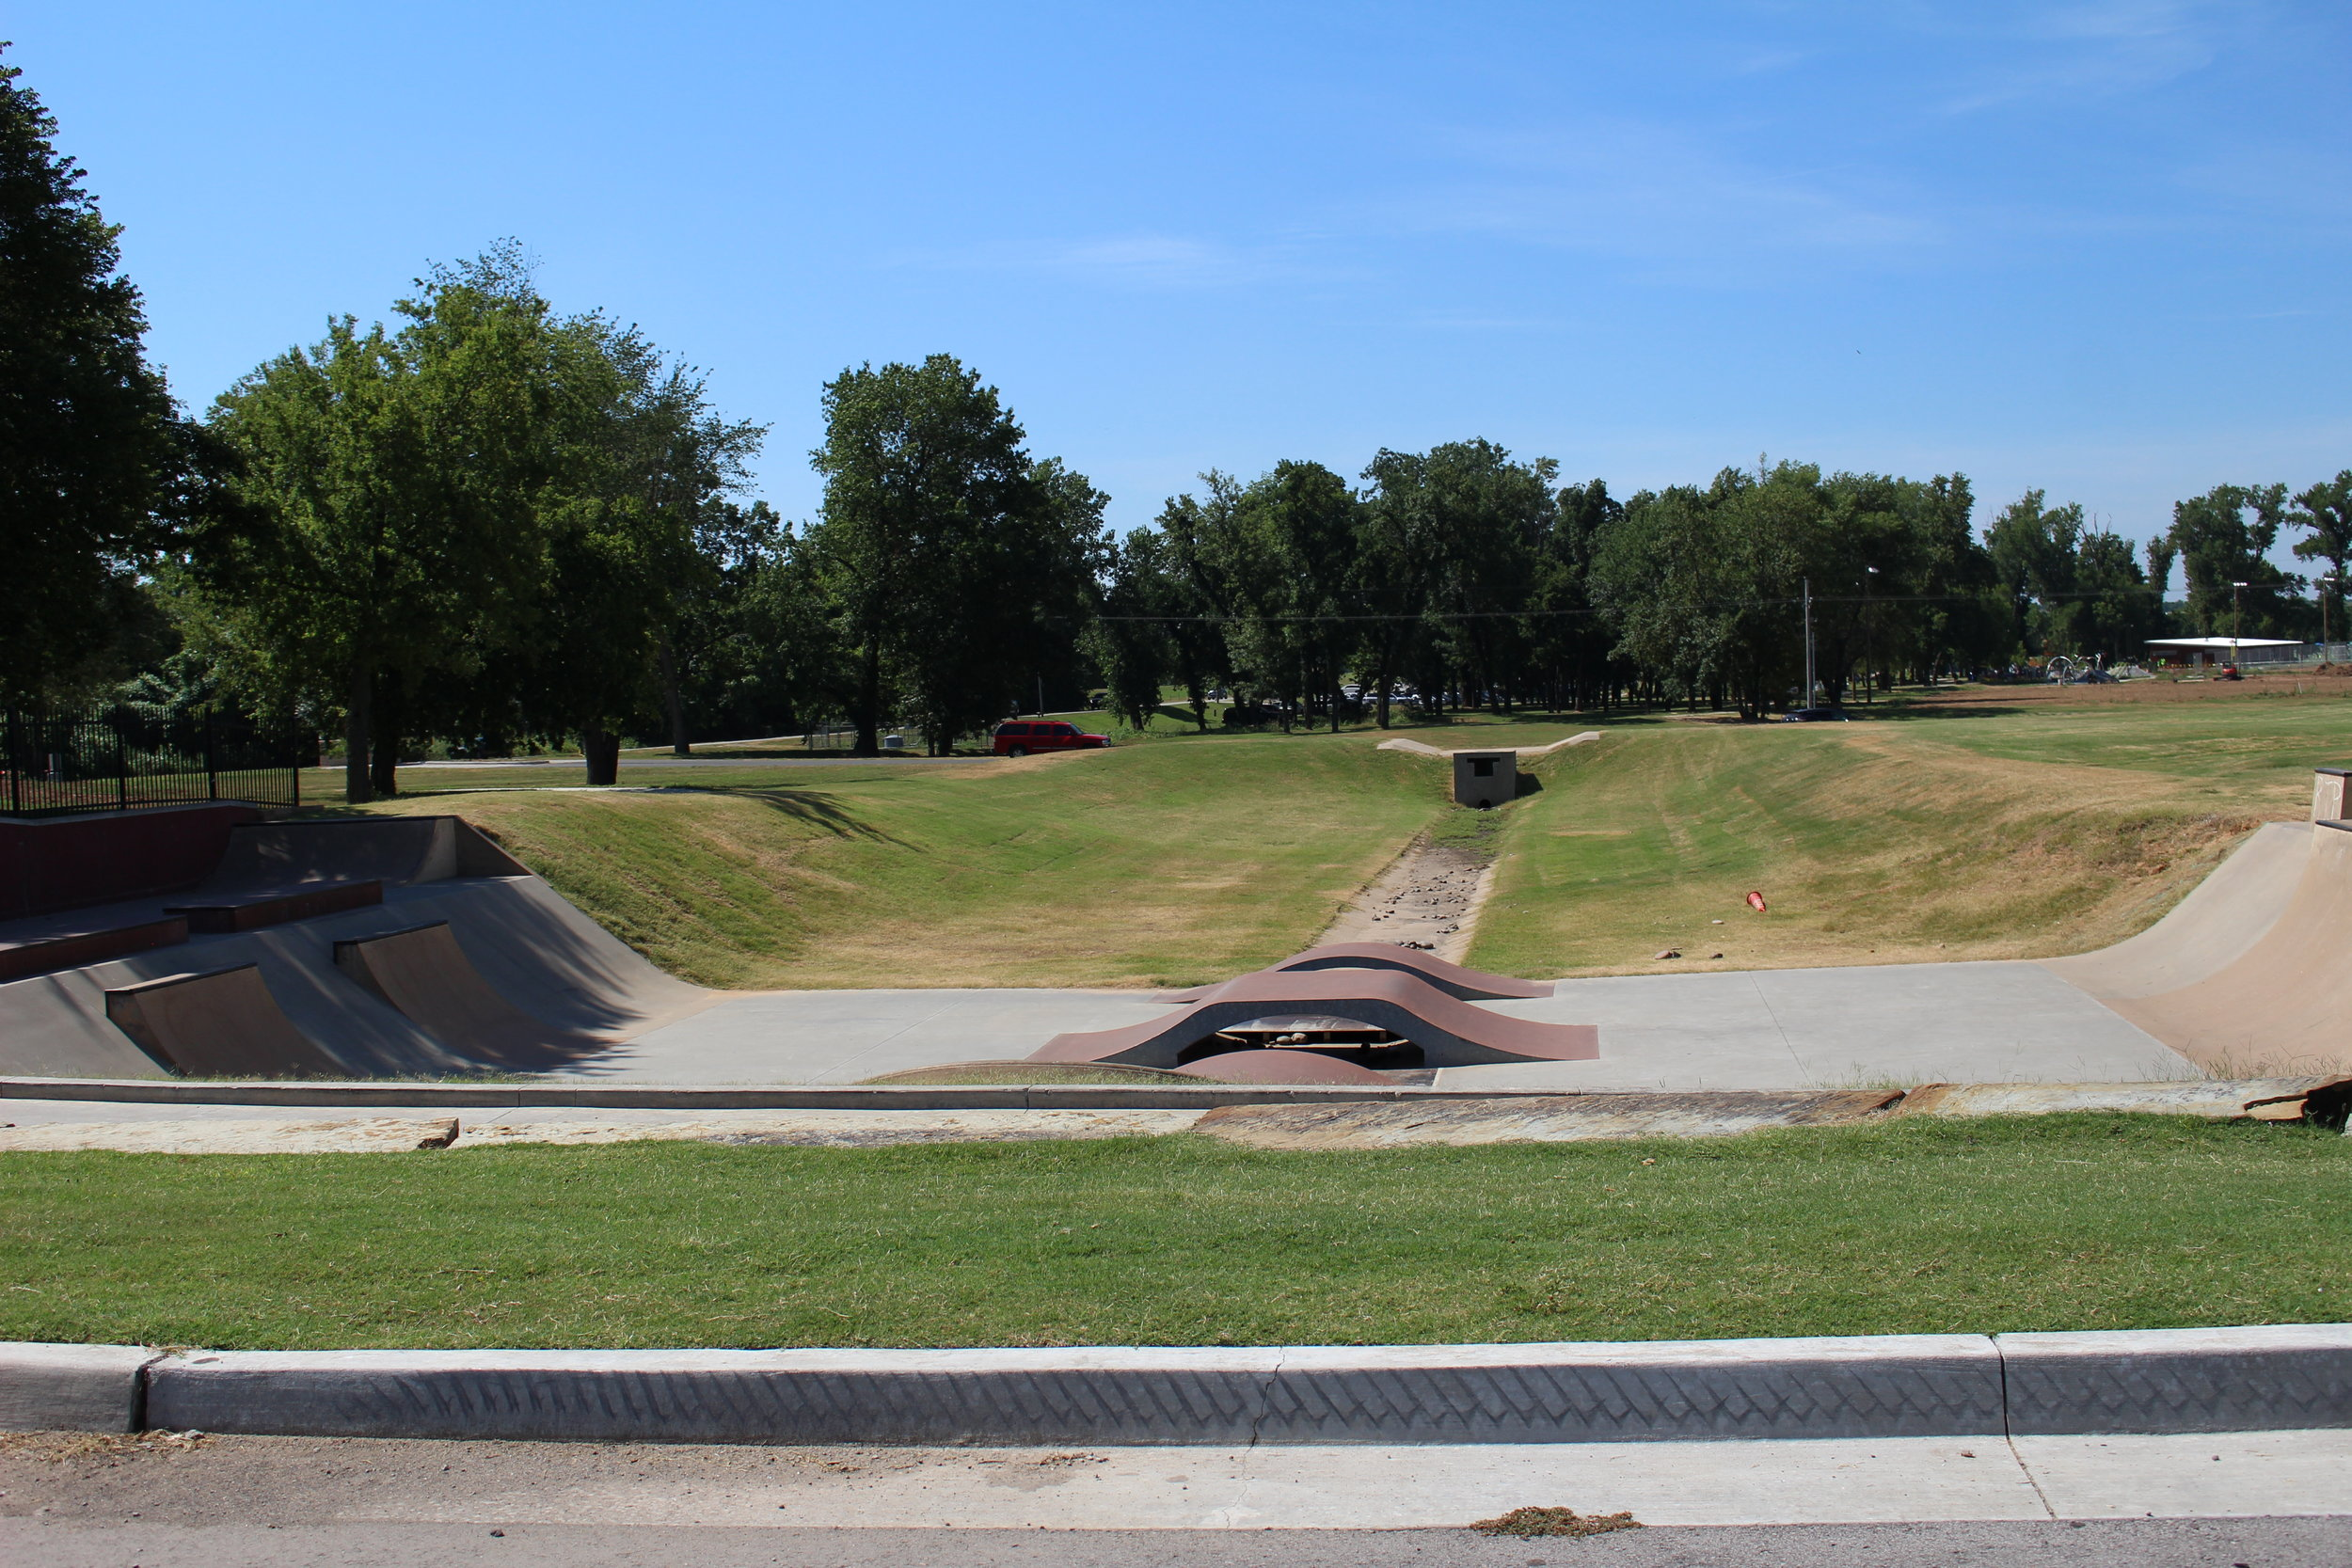 case skate park 1050 west wekiwa road